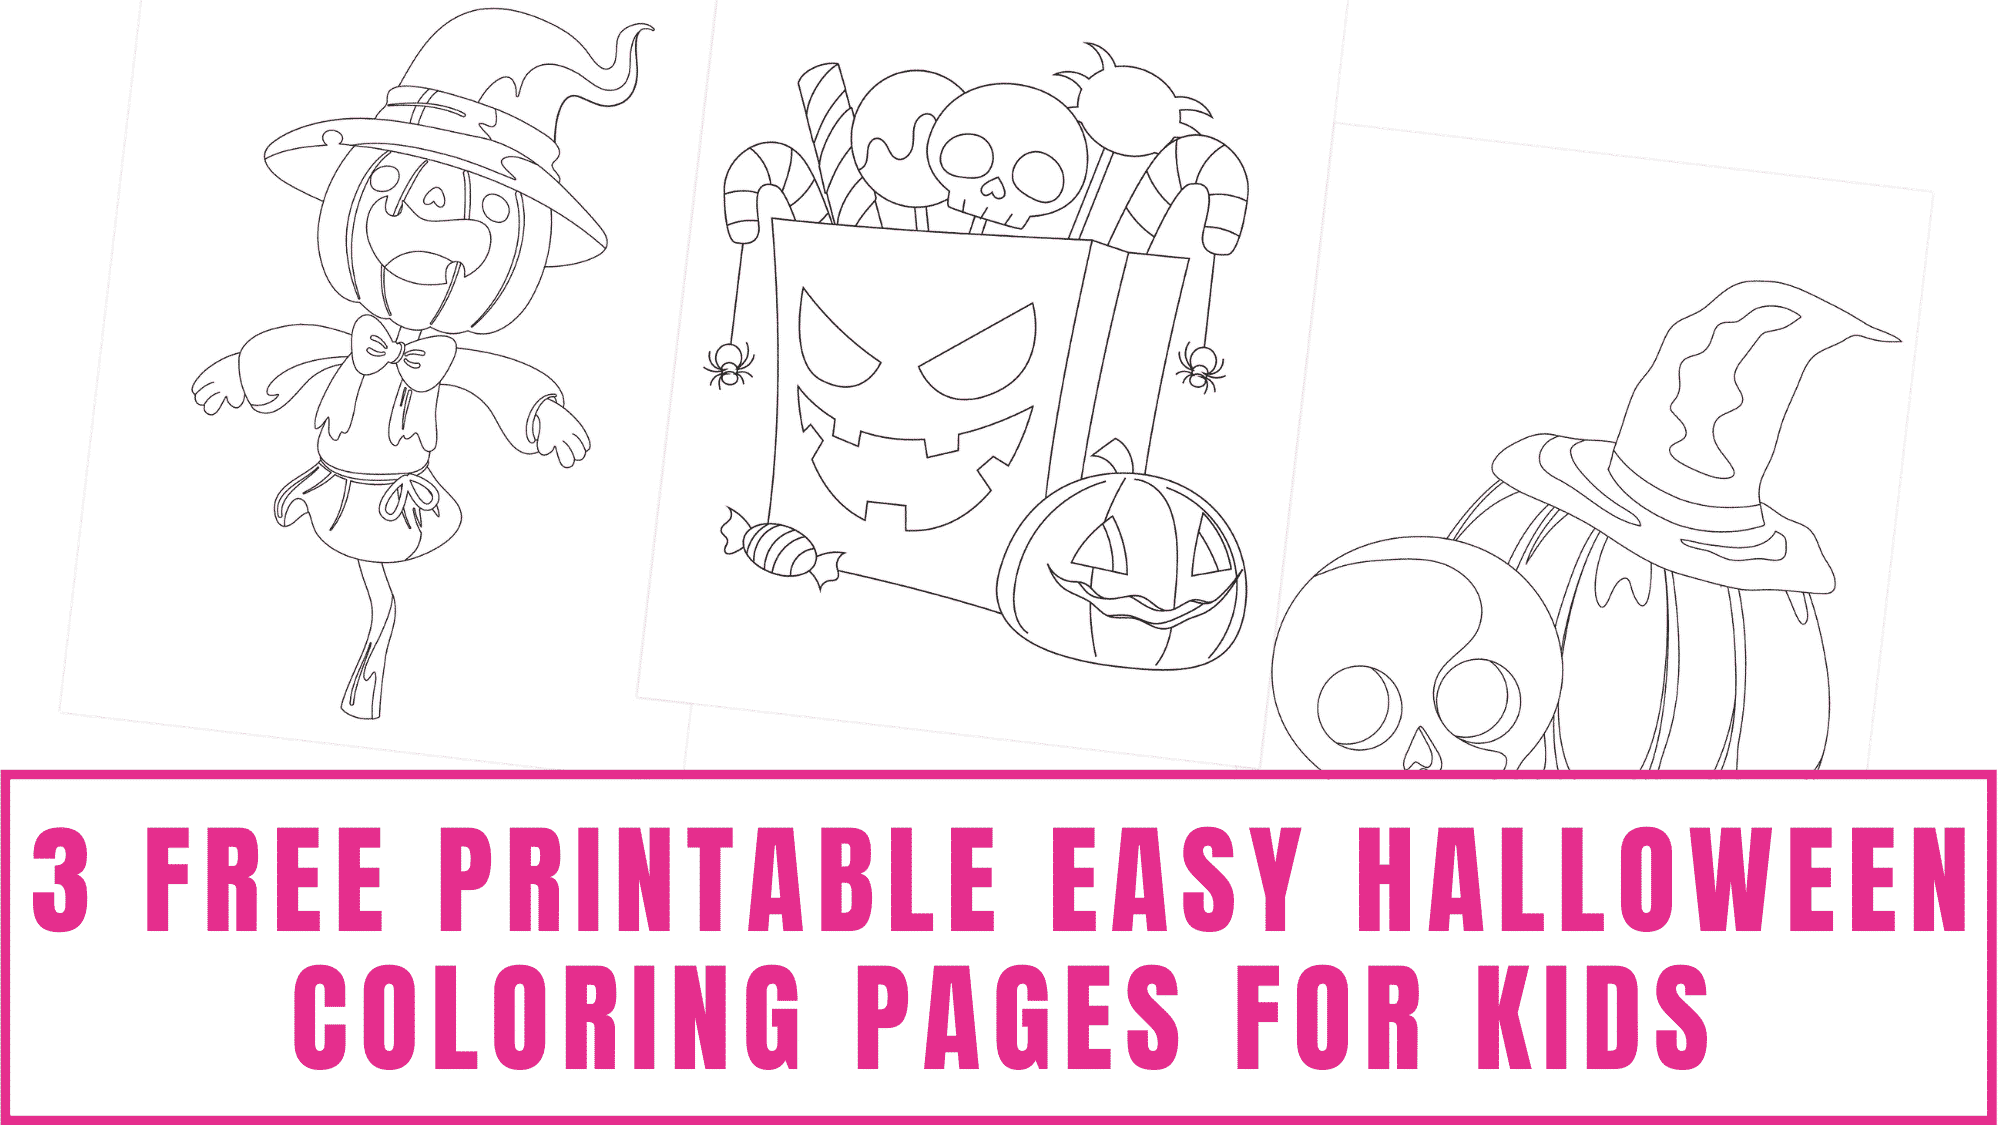 Your kids will have fun decorating these free printable easy Halloween coloring pages for kids.